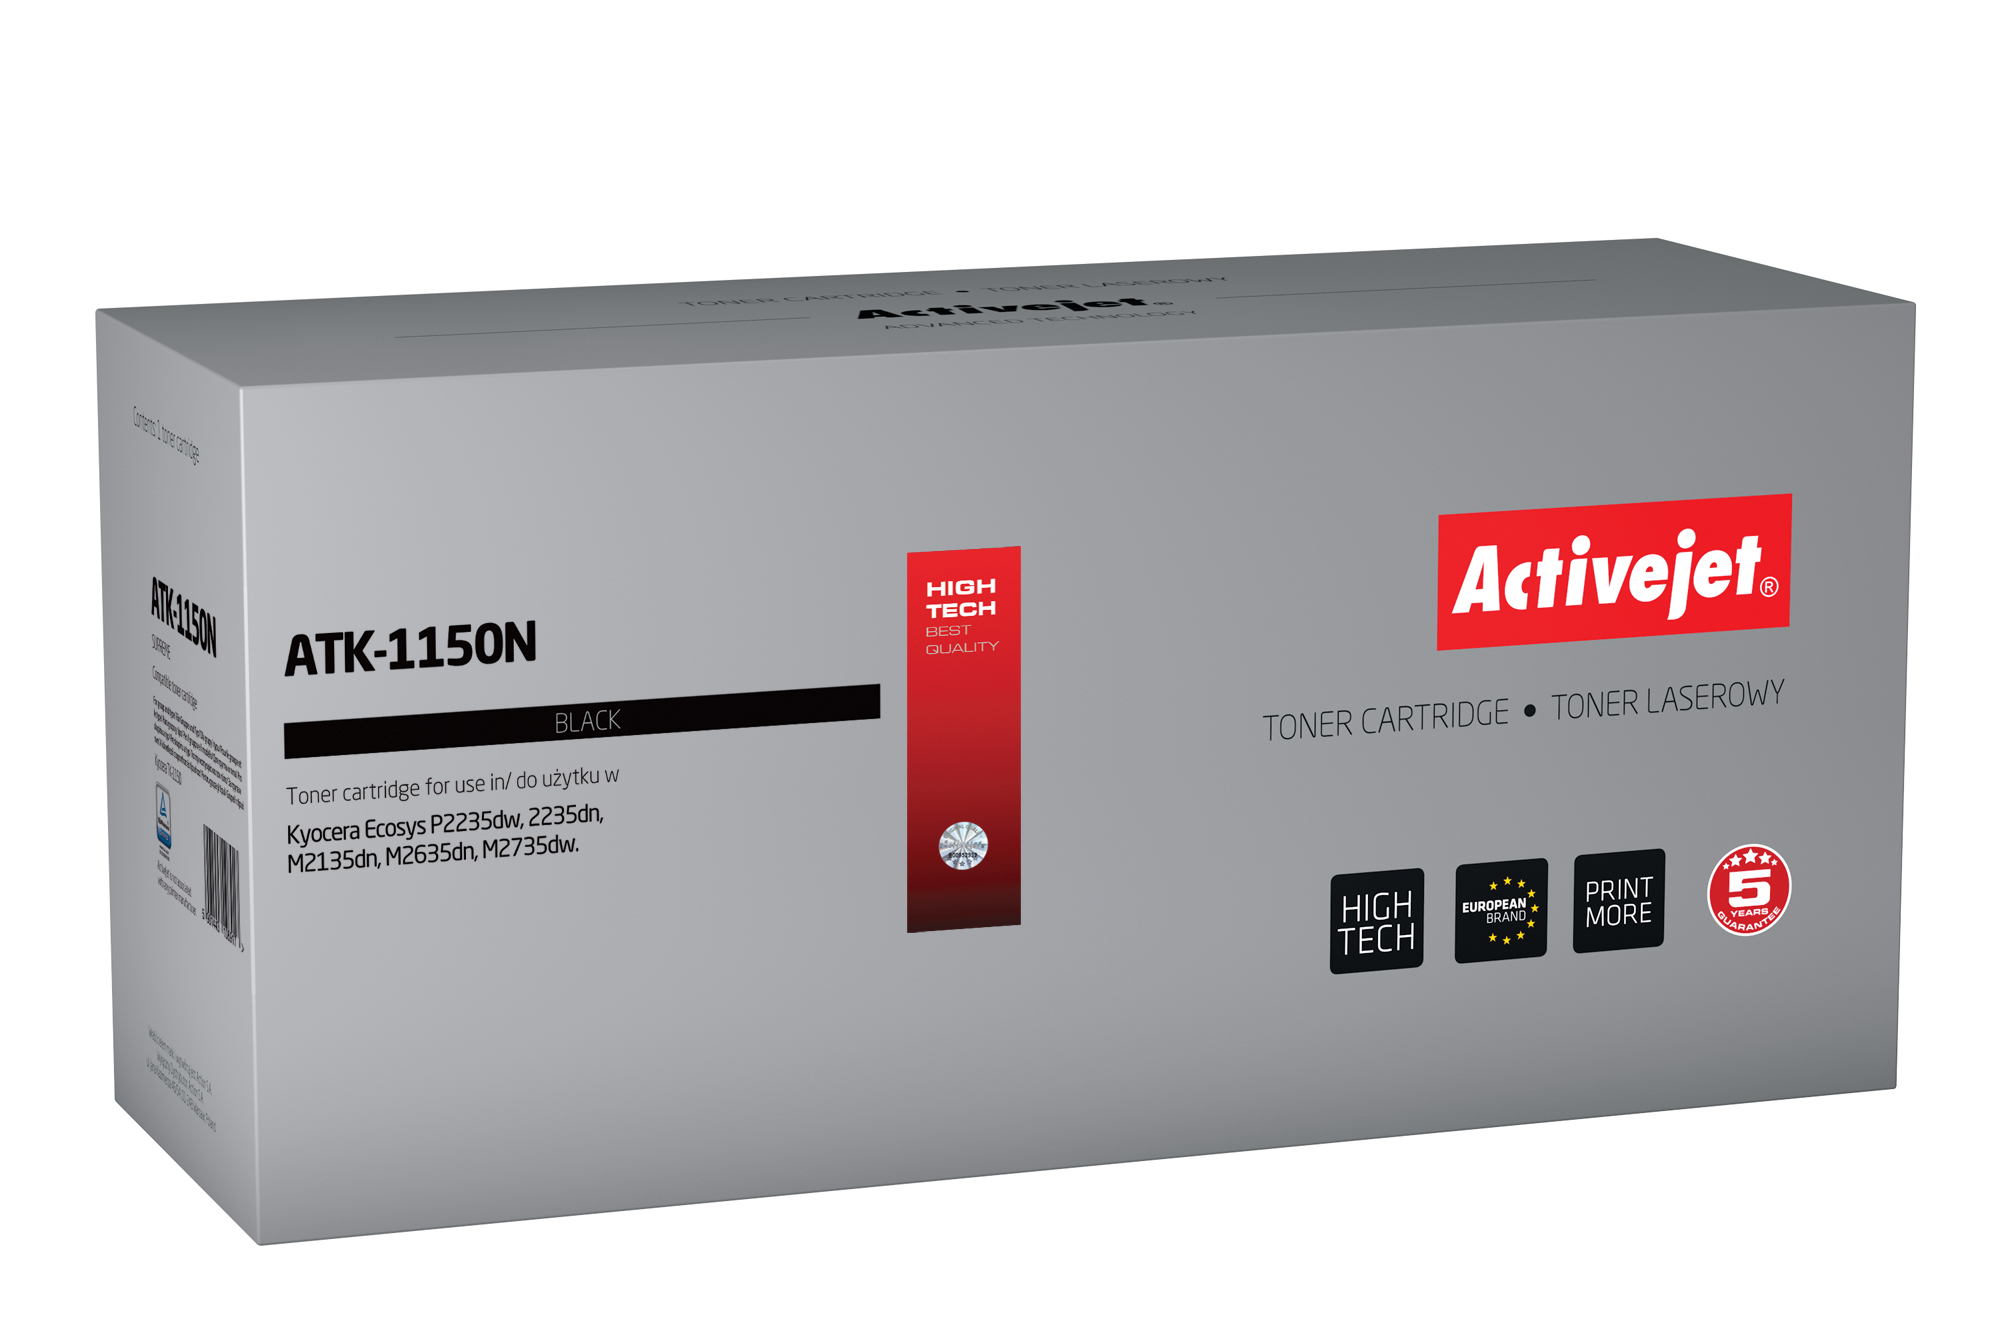 Activejet toner do Kyocera TK-1150 new ATK-1150N